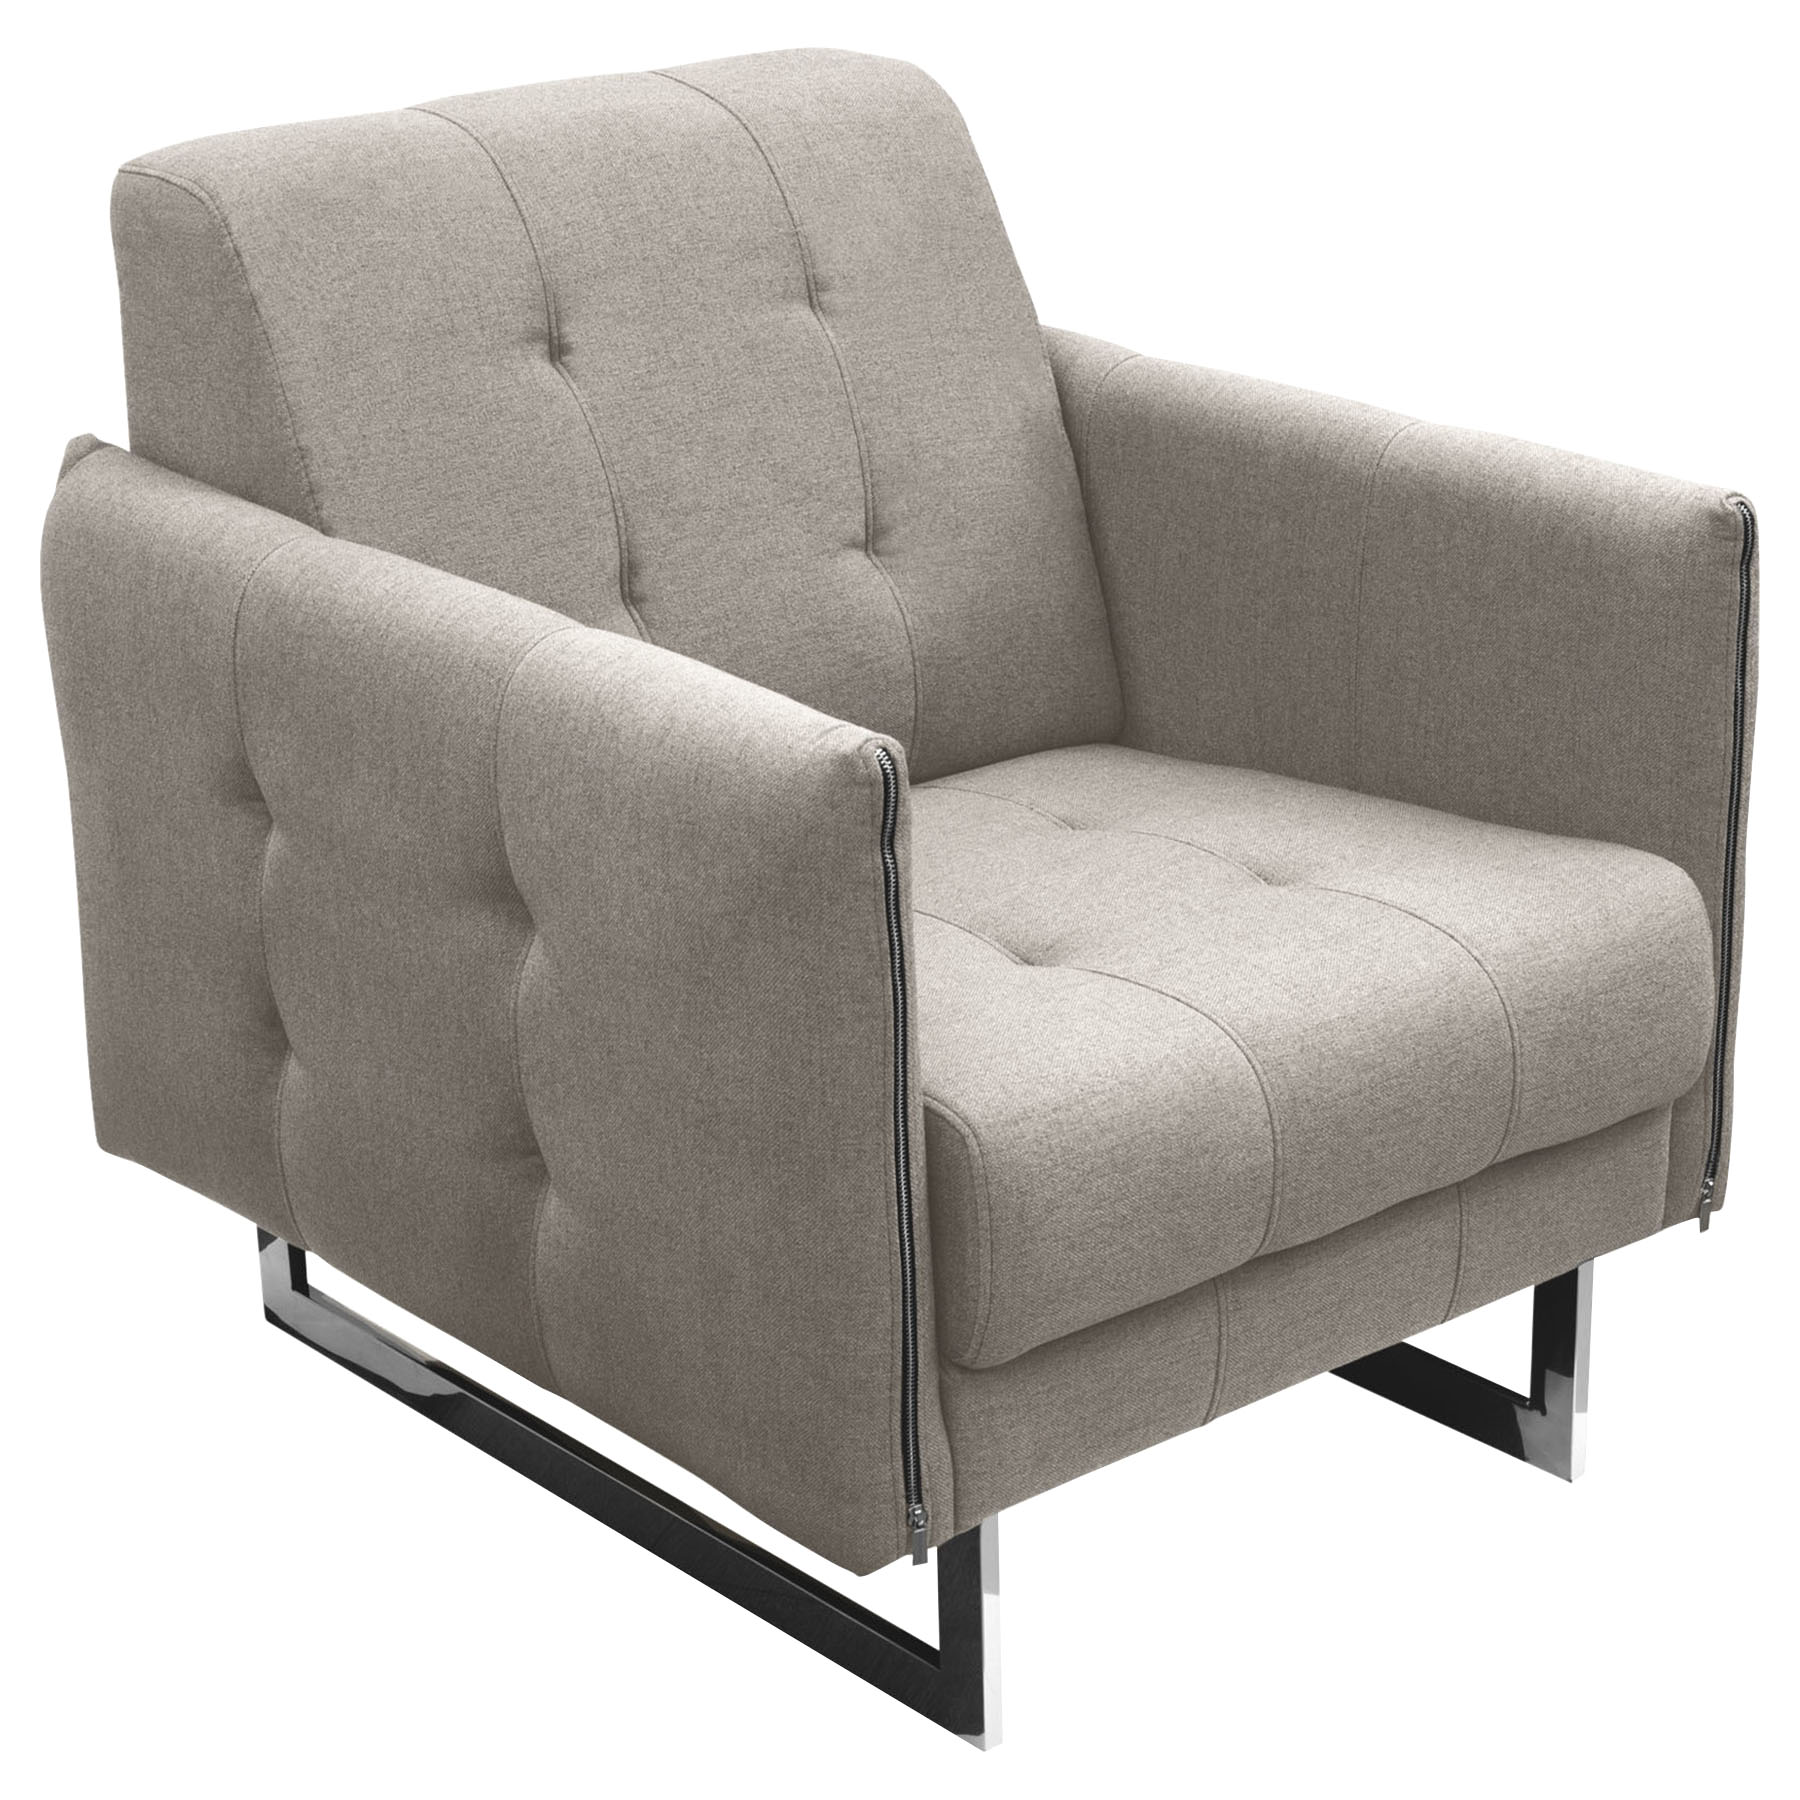 Convertible Ottoman Chair Costco: Hampton Convertible Tufted Sofa And Chair